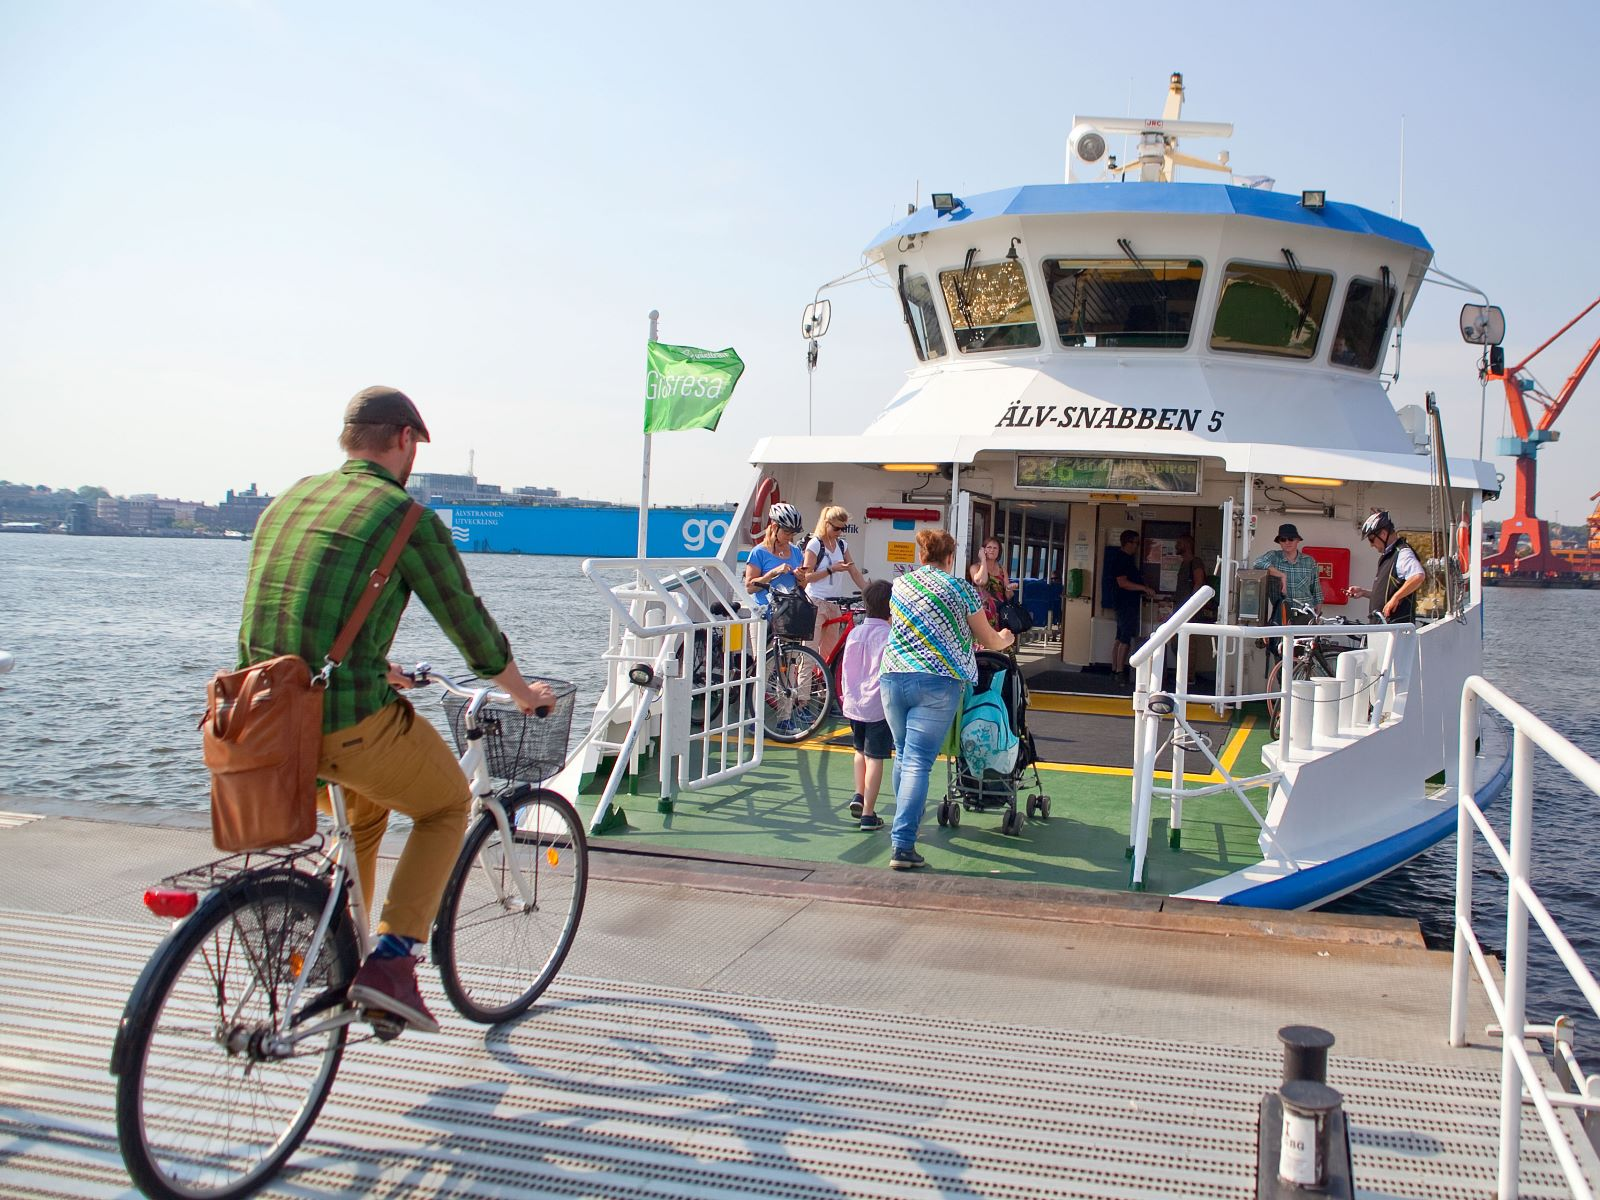 Ferry Gothenburg